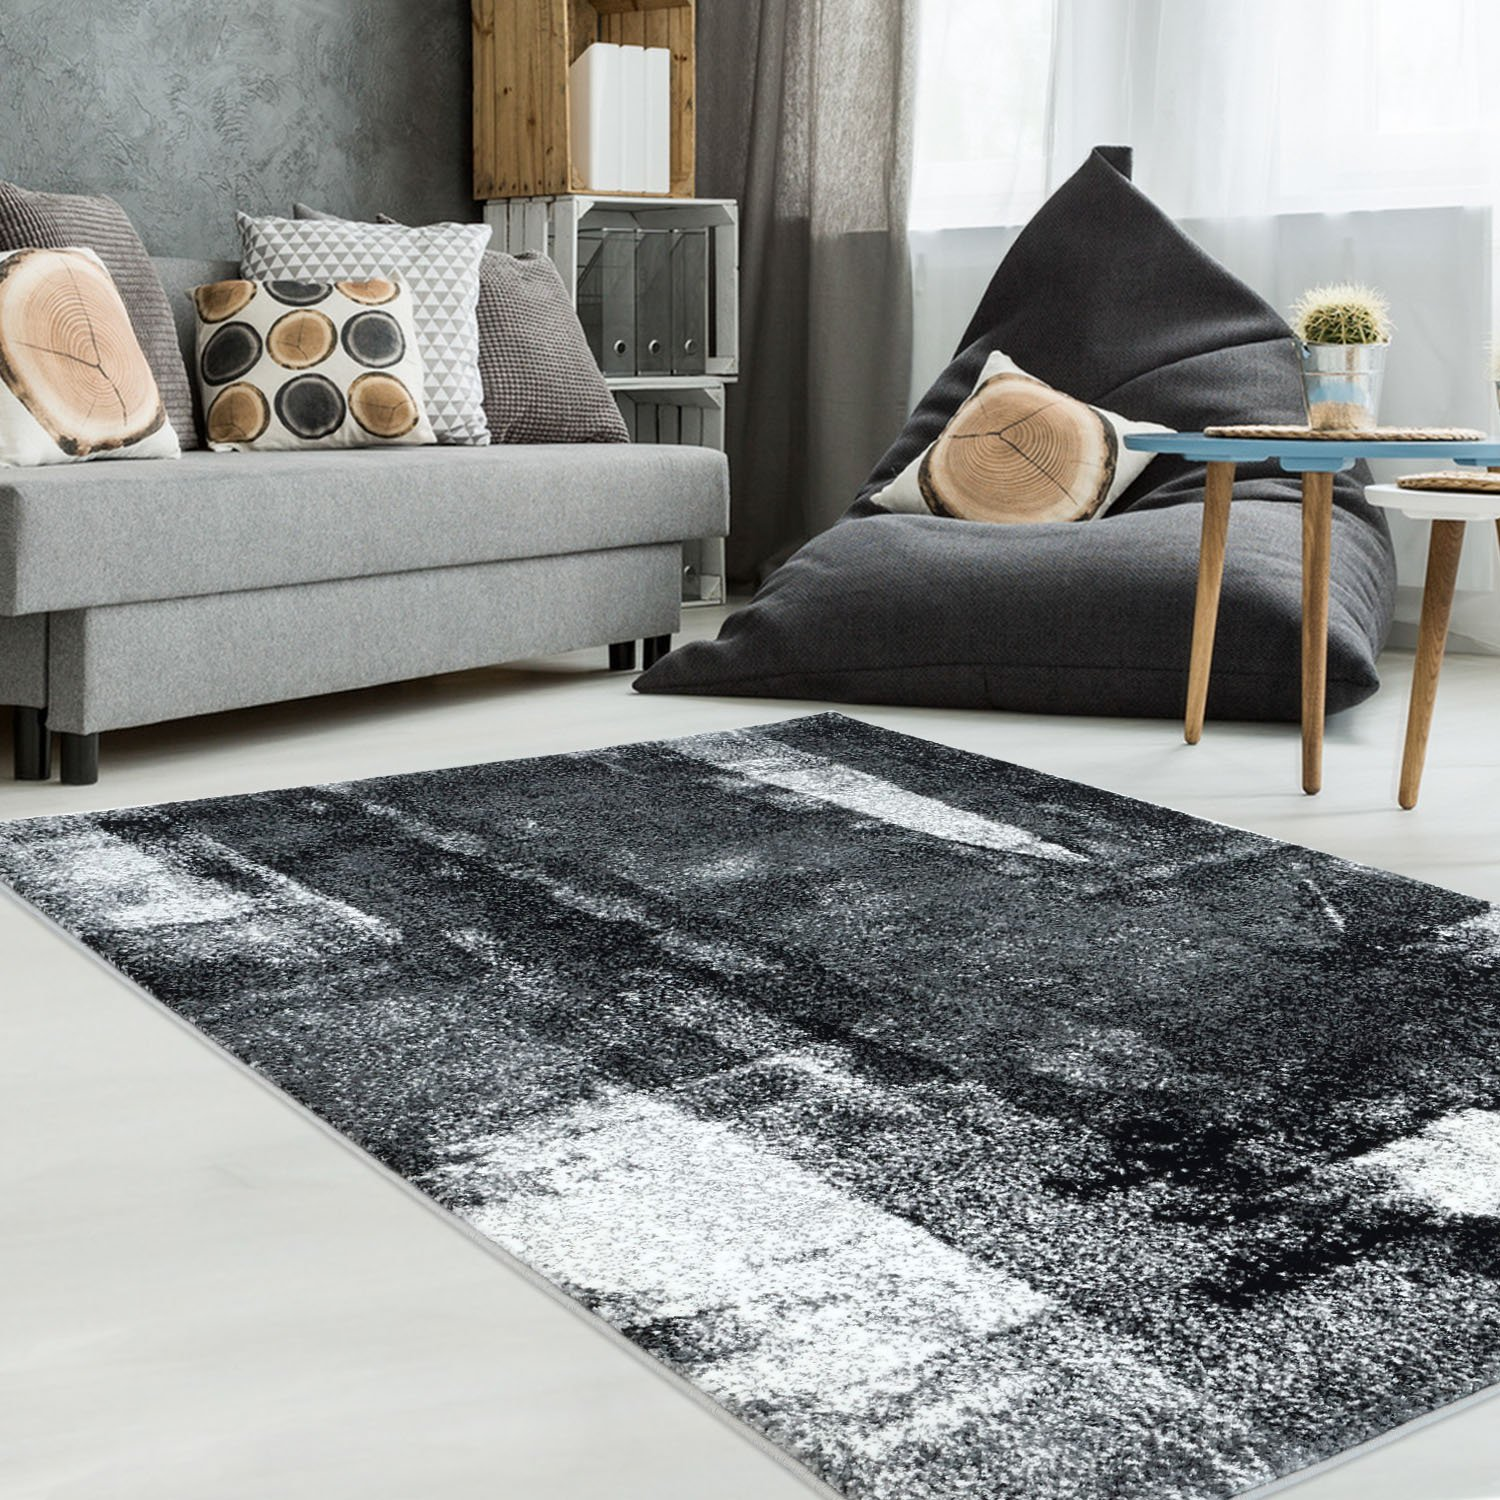 Unigue Black Area Rug, Synthetic Modern Contemporary Durable Living Room Area Rug (4 x 6) Ladole Rugs